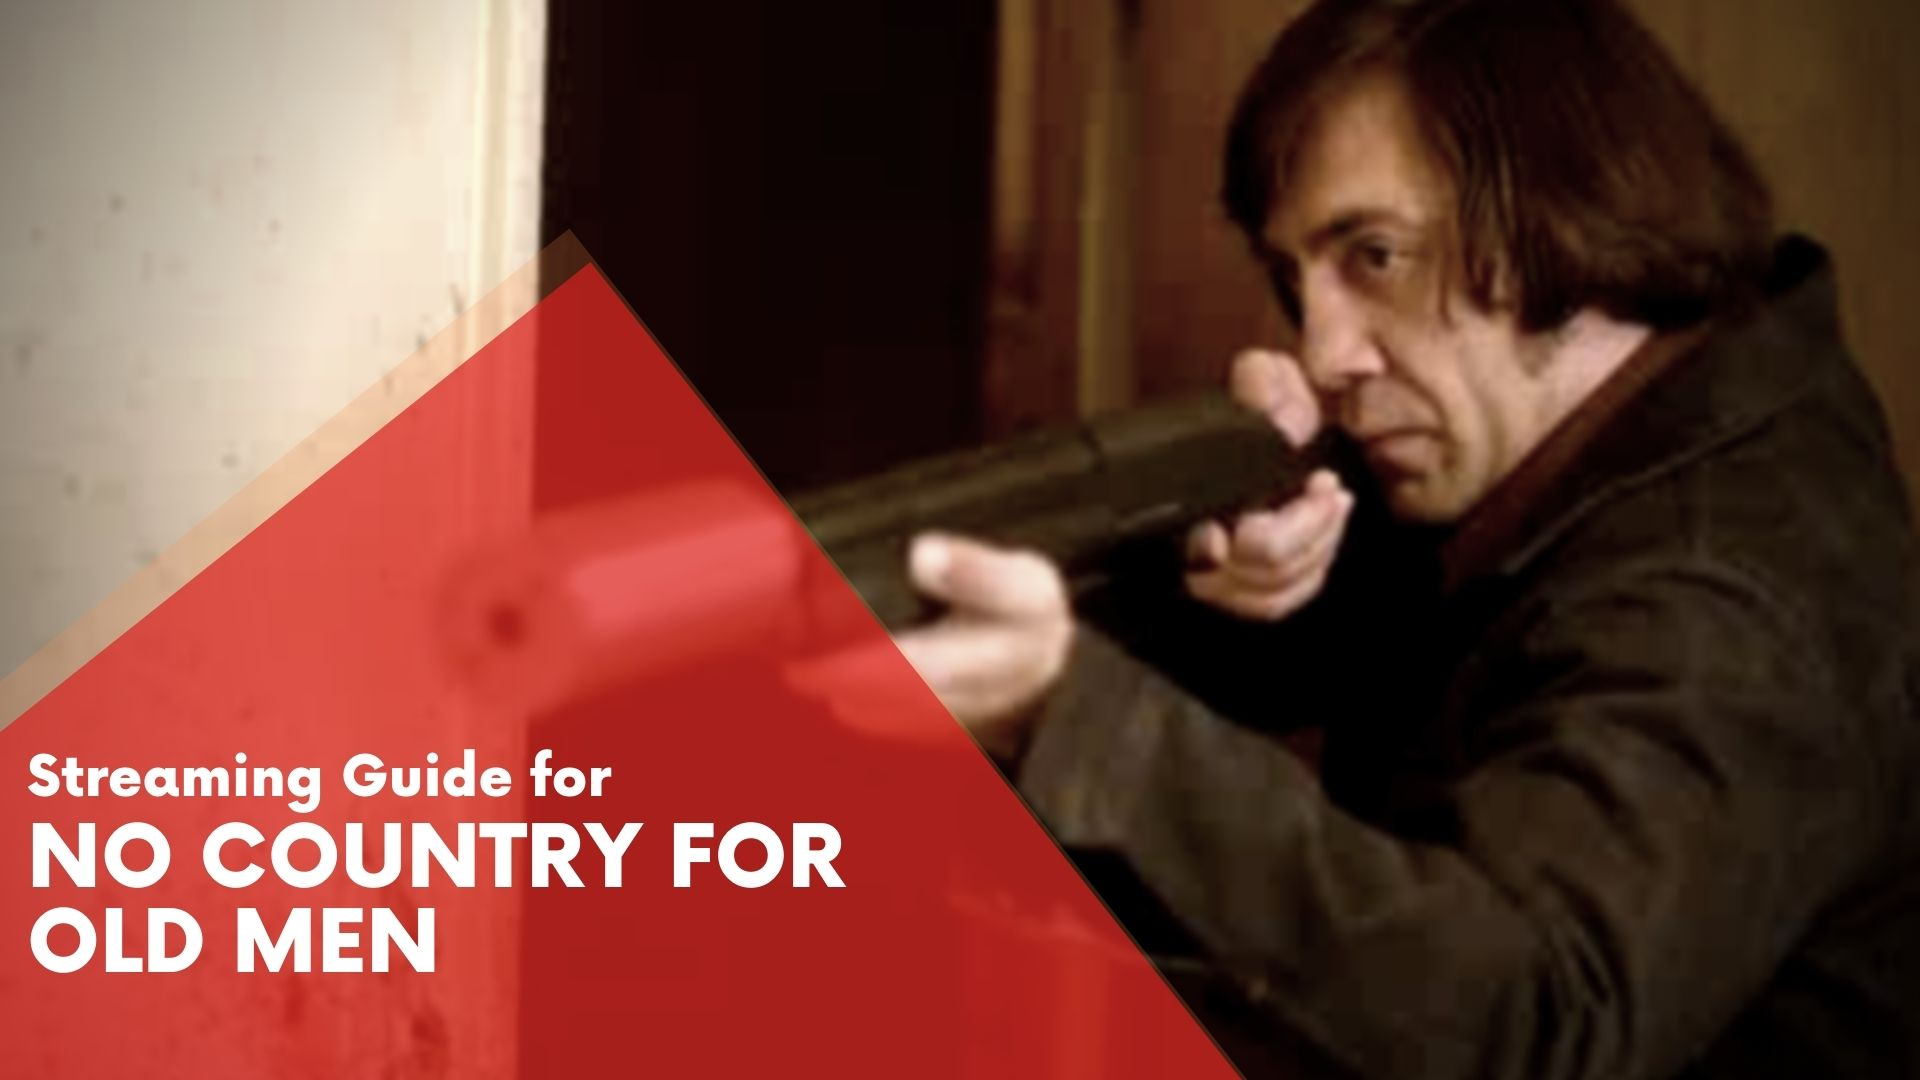 Answering if No Country for Old Men is available on Hulu